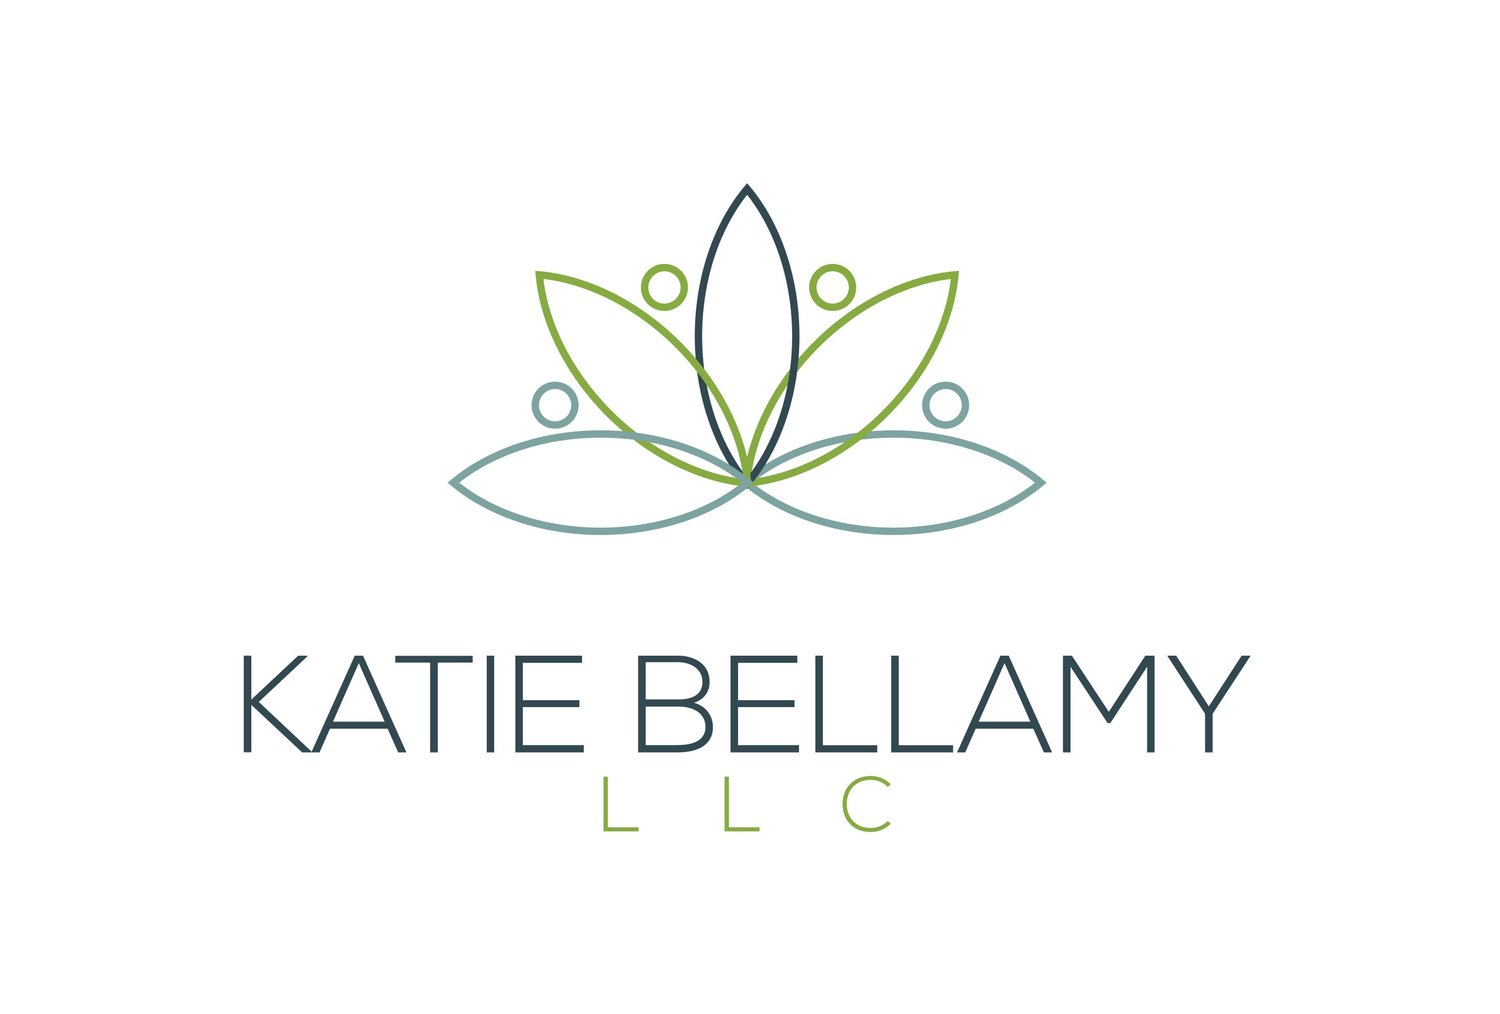 Katie Bellamy, LLC